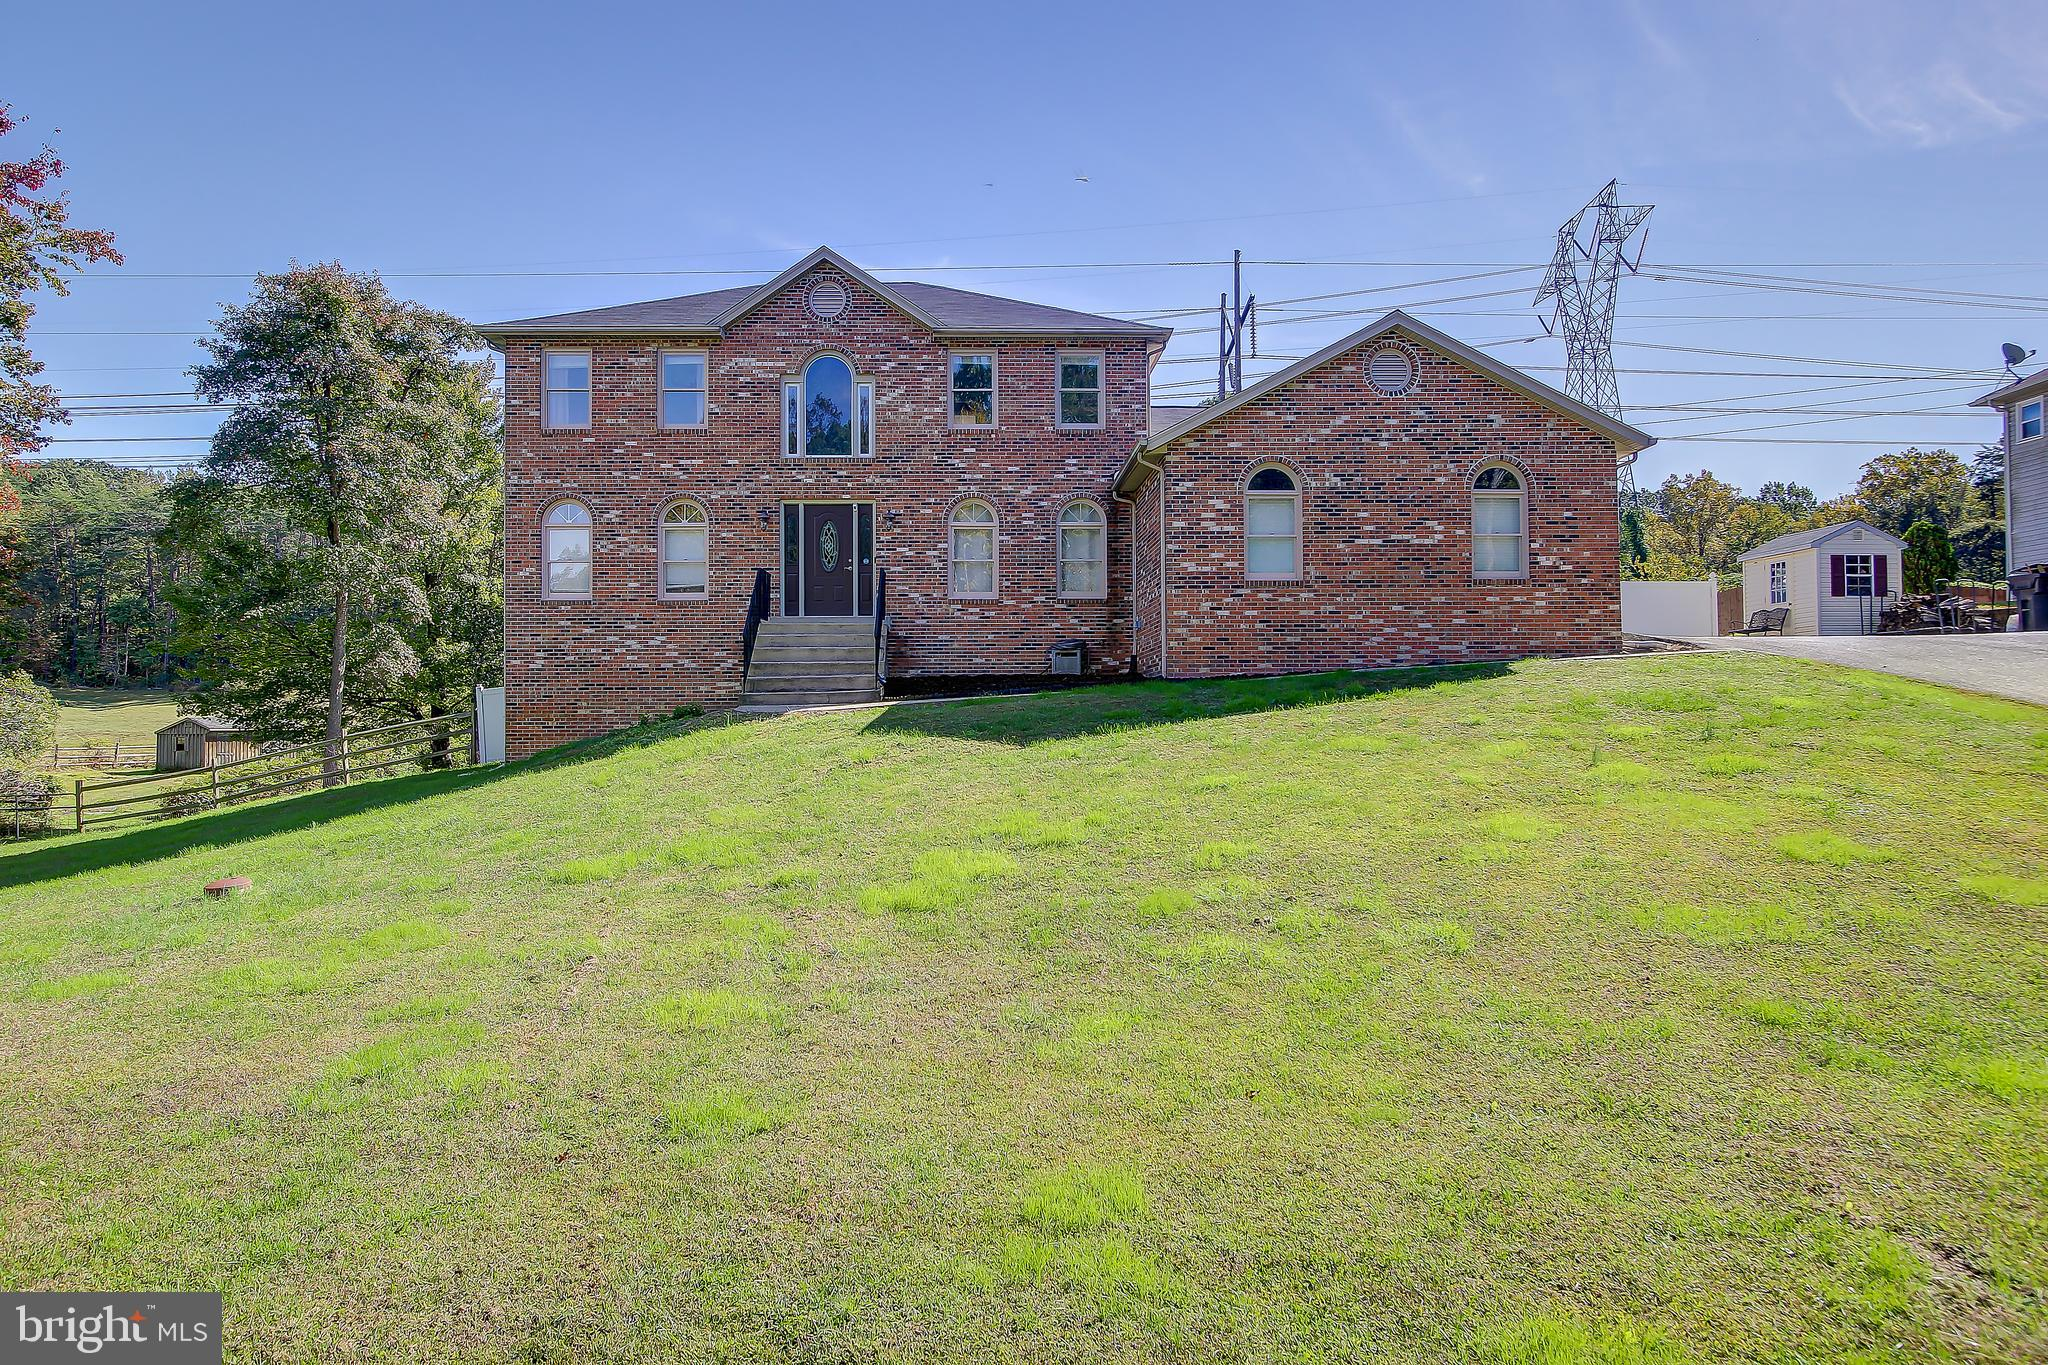 $15,500 drop from a motivated seller. This beautiful 4 bedroom/3 bathroom brick front colonial has a lot of qualities you just won't see every day in this market. Some of the more notable features include... Both HVAC systems were replaced in 2019, Heated inground pool, 1.46 acre lot backing to unbuildable land, 2 car side load garage while being located in a small neighborhood with a private feel and NO HOA yet still close to everything.  Upon entering the front door, you'll find a large two-story foyer with beautiful hardwood floors. Just inside..  there is a convenient main level bedroom with a full bathroom perfect for guests or a family member who wants to avoid stairs. The open kitchen with its cherry cabinets, Corian countertops, tile flooring, and the island is just off of the good-sized family room with vaulted ceilings, skylights and a wood-burning fireplace. Direct access from the family room to the rear deck overlooking the beautiful heated pool, patio and fenced in yard; makes it the perfect location for get-togethers or just relaxing evenings with the family. The main level also offers a formal dining room with a large bay window with no shortage of natural light and a formal living room that could be used as an office. The upper level has tons of natural light with its Palladian window located above the foyer and skylights in both bathrooms. Your spacious owner's bedroom with a walk-in closet and large owner's bath boasts a floor to ceiling tile shower and huge soaking tub. Also on the upper level, you'll find two additional great sized bedrooms and another full bathroom. The entire upper-level carpet including the stairs has been replaced and fresh paint in most areas. The large basement is framed and ready for drywall, but it could easily be re-designed to meet your family's specific needs or desires. Some possible options could include a 5th bedroom meeting code requirements with a window already in place, a large recreation room, theater room, or